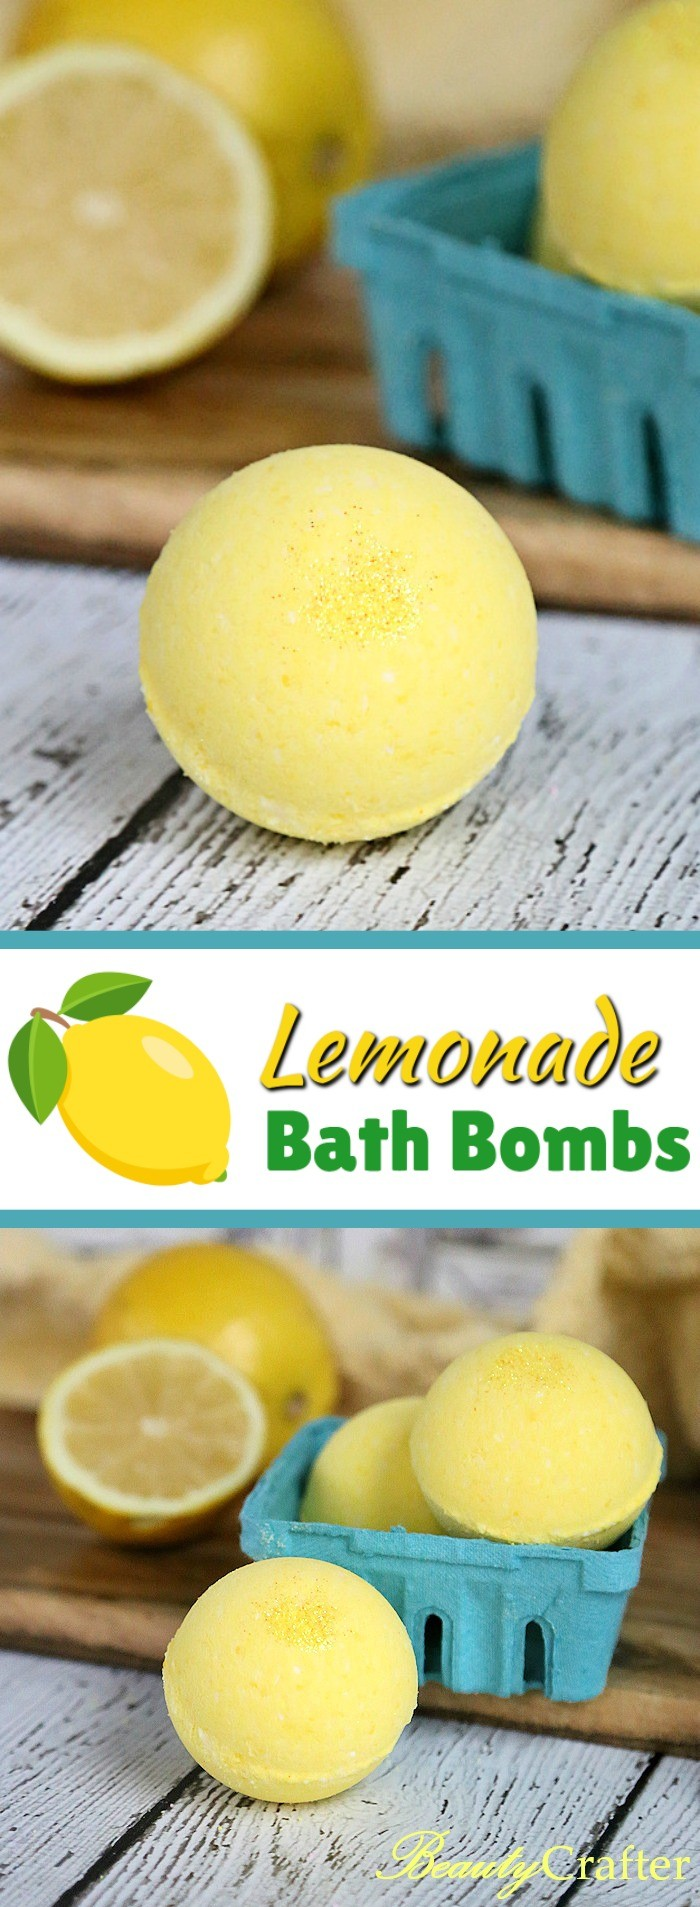 Lemon Bath Bombs Recipe - DIY Lemon Bath Fizzies with Free Printable Labels